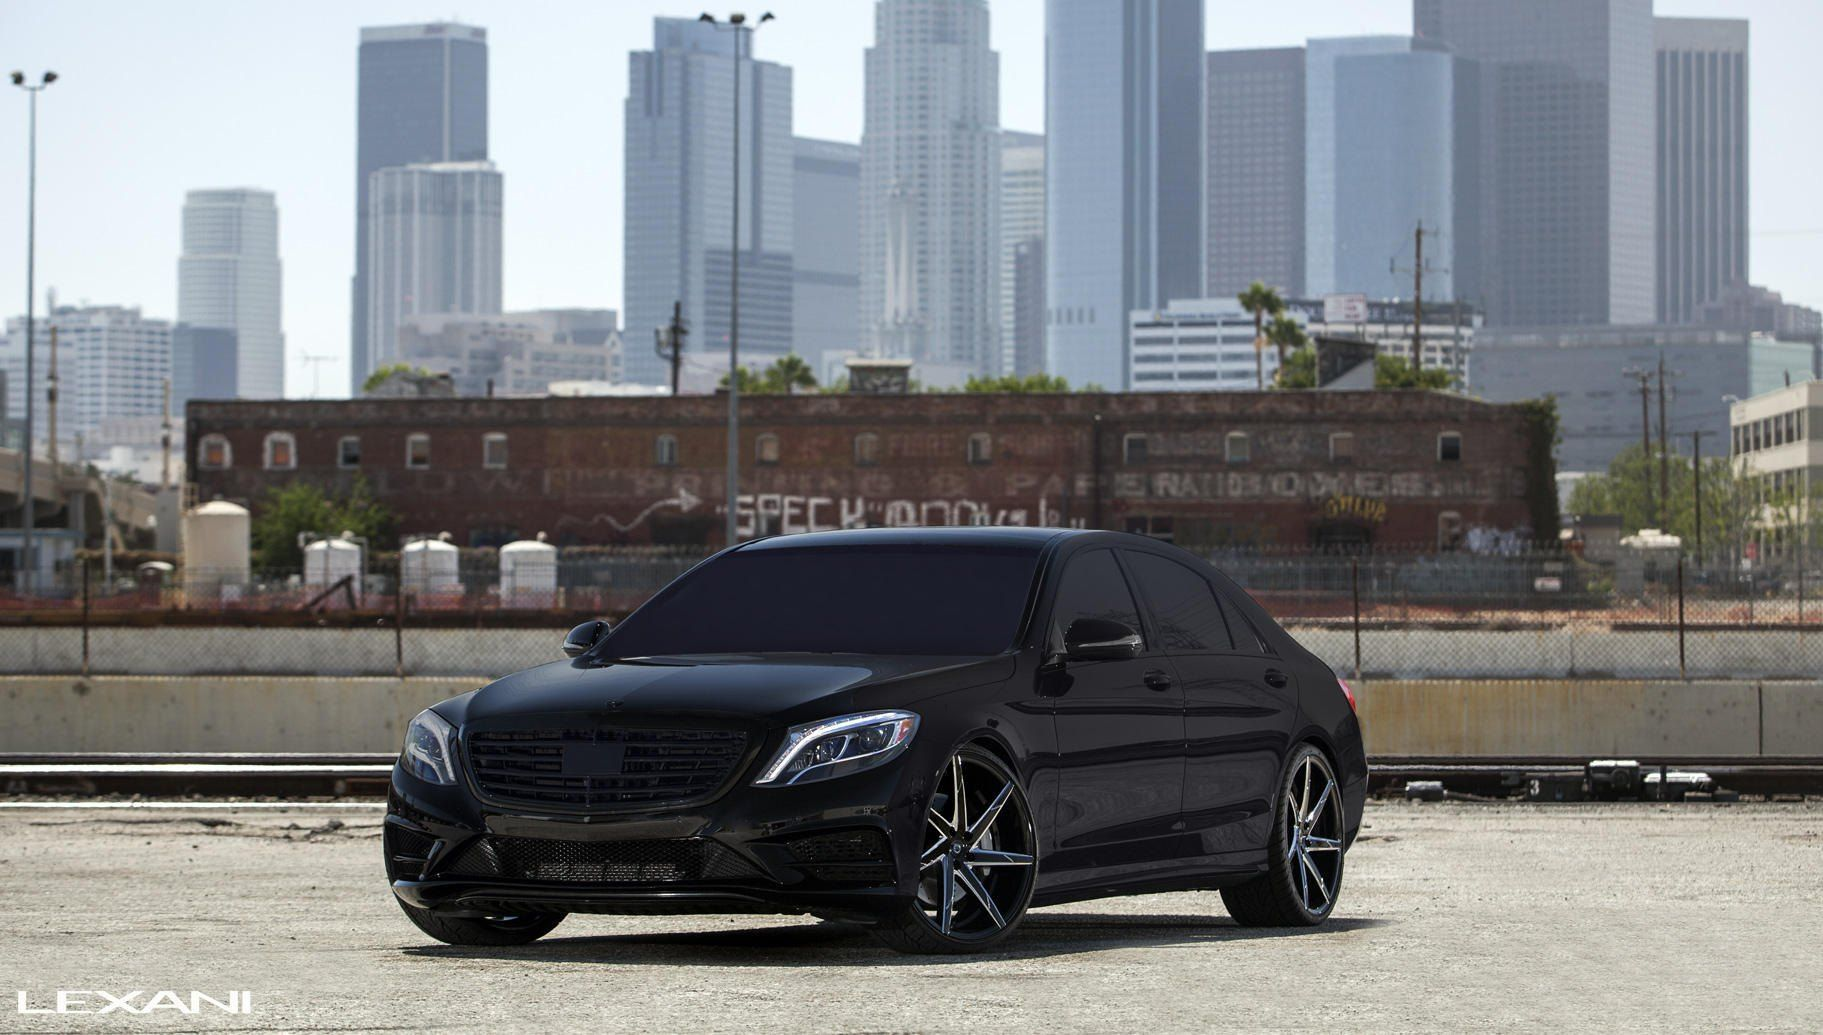 Mercedes S Class With Extratouch Of Luxury From Lexani Mercedes Benz S550 Mercedes S Class Mercedes